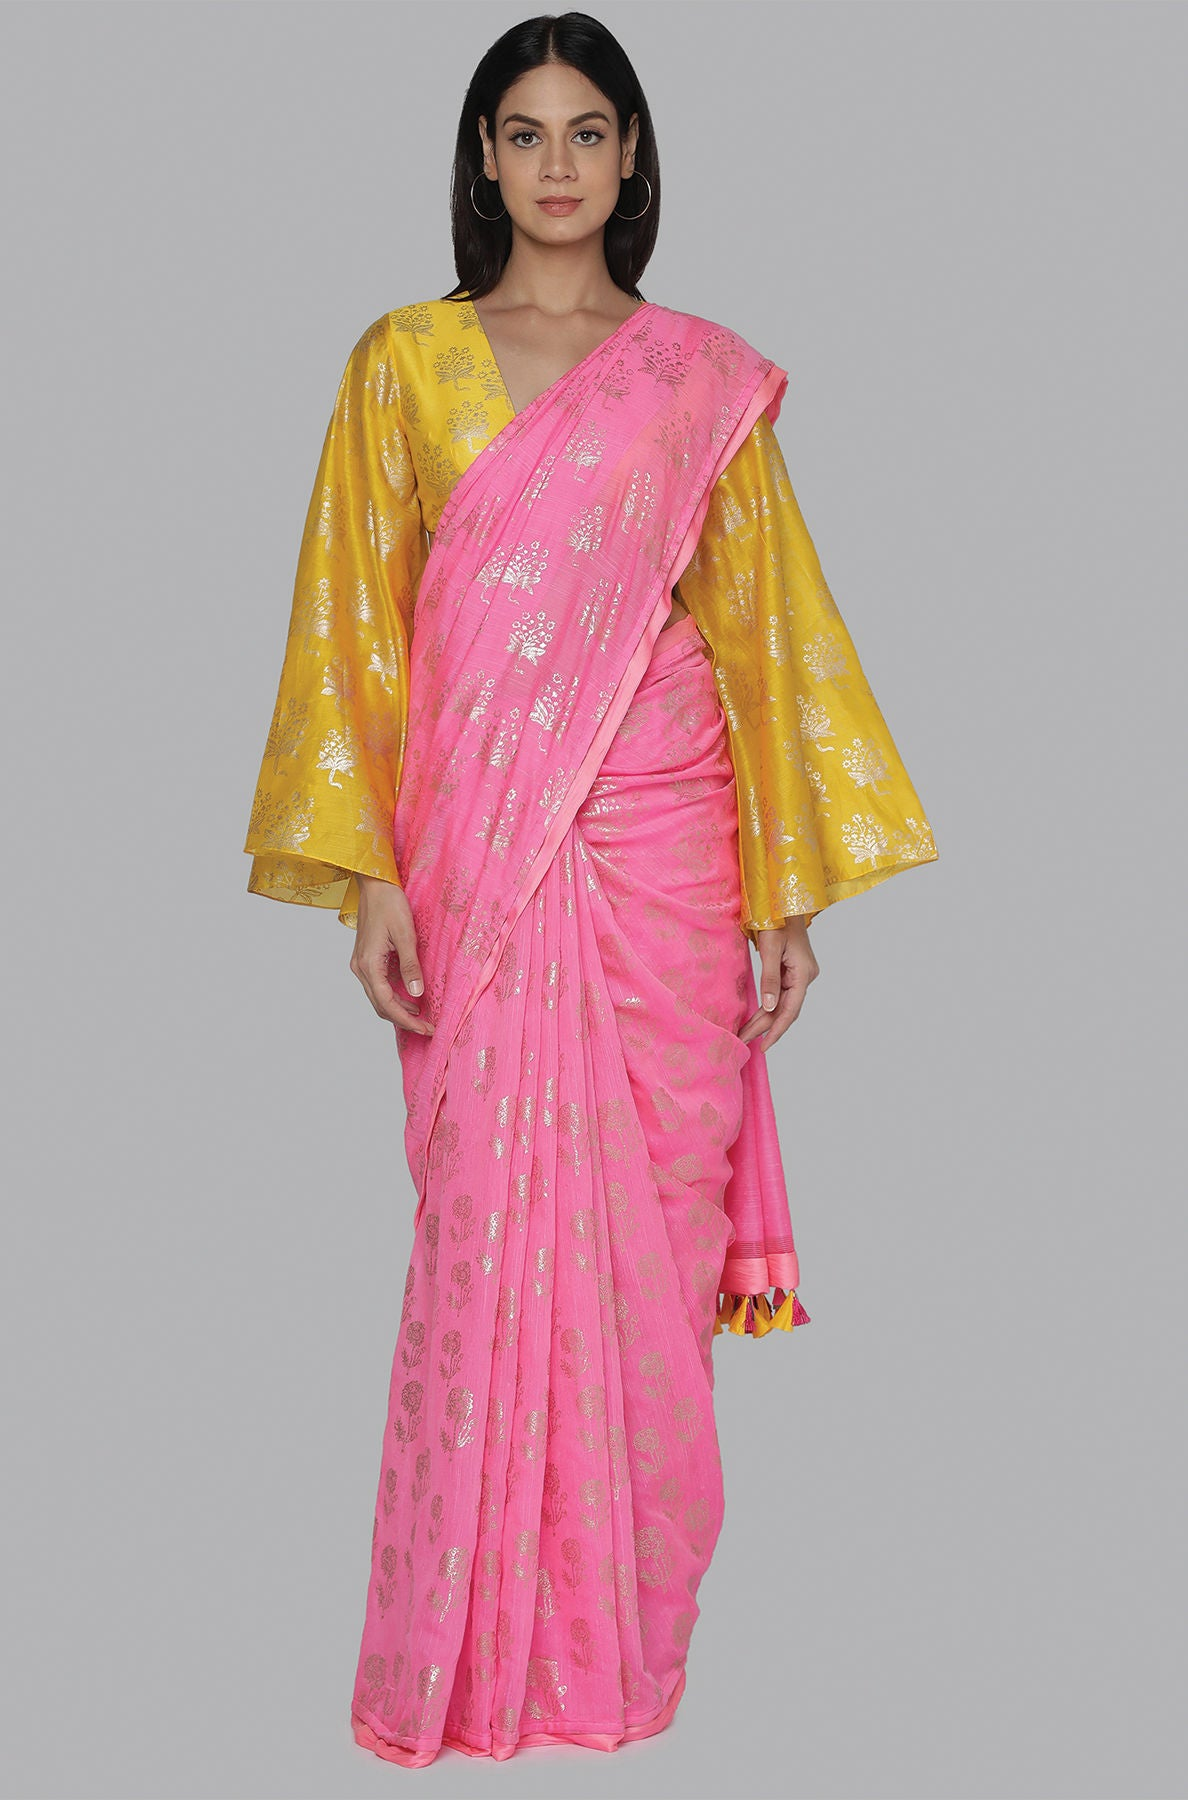 CANDY PINK STAR FLOWER AND MARIGOLD FOIL HALF AND HALF BANARSI SARI WITH YELLOW STAR FLOWER FOIL BLOUSE - The Grand Trunk